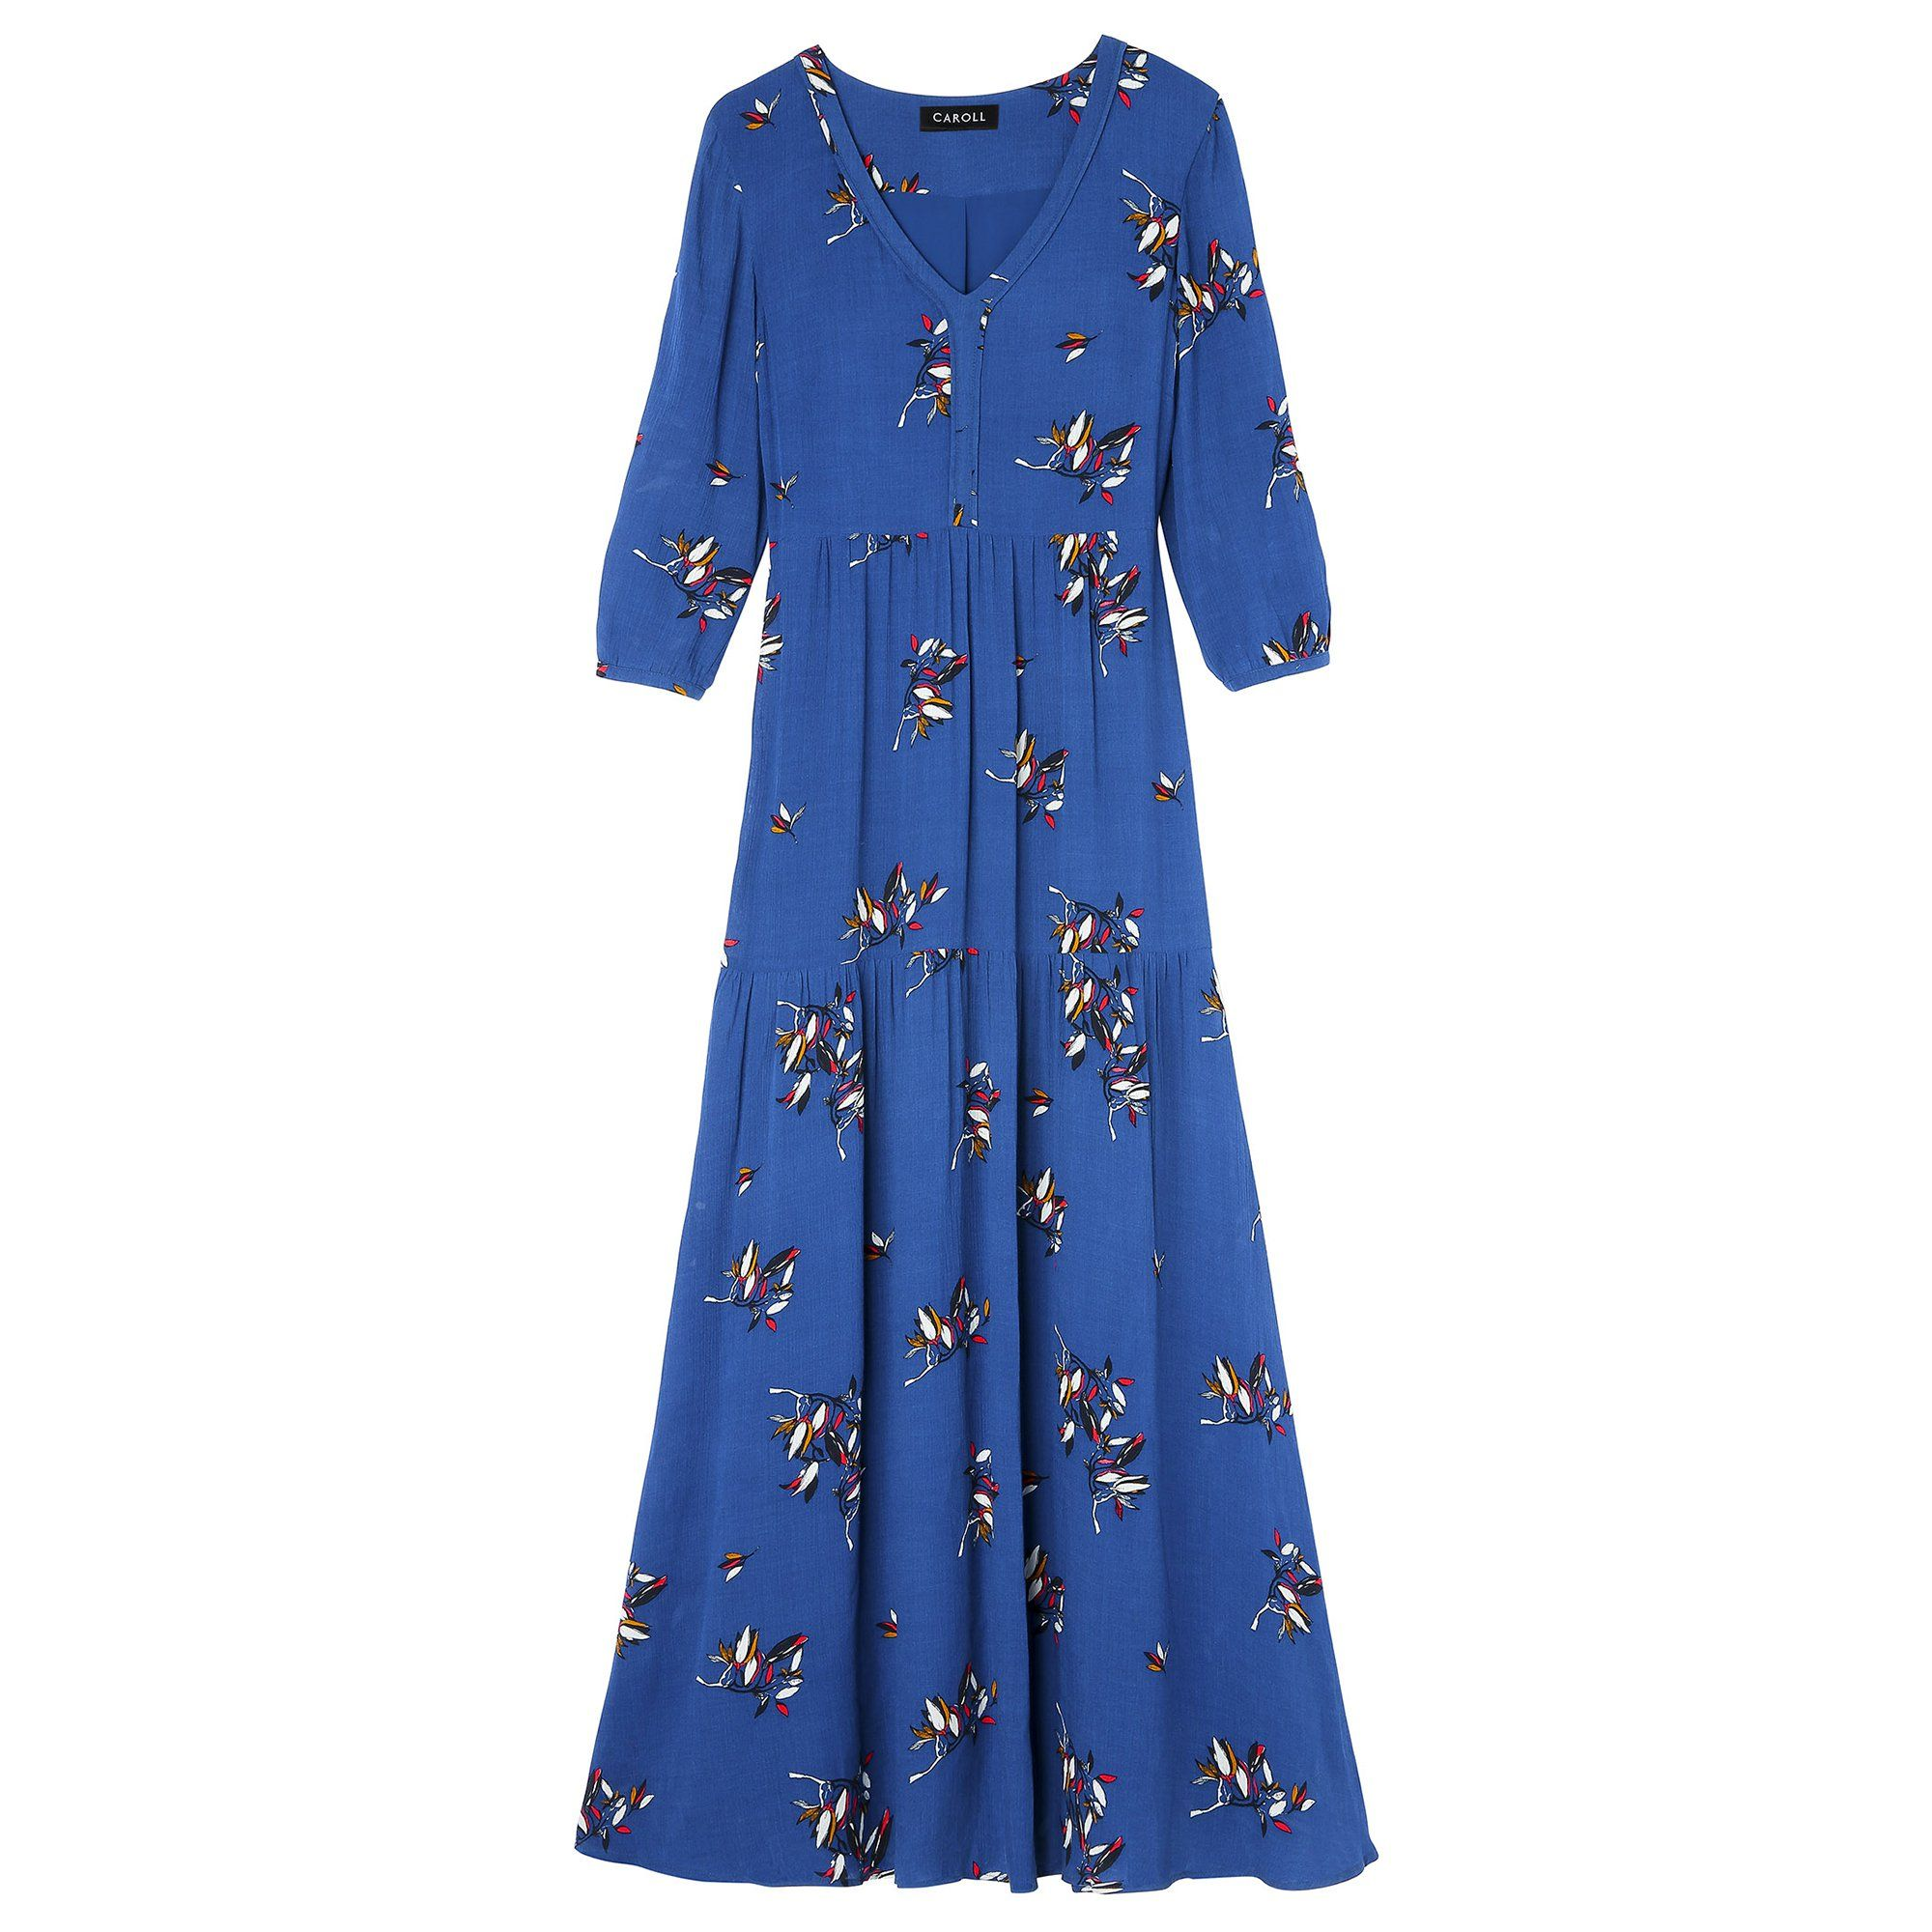 45 robes longues printemps été 2019 | Dresses, Dresses with